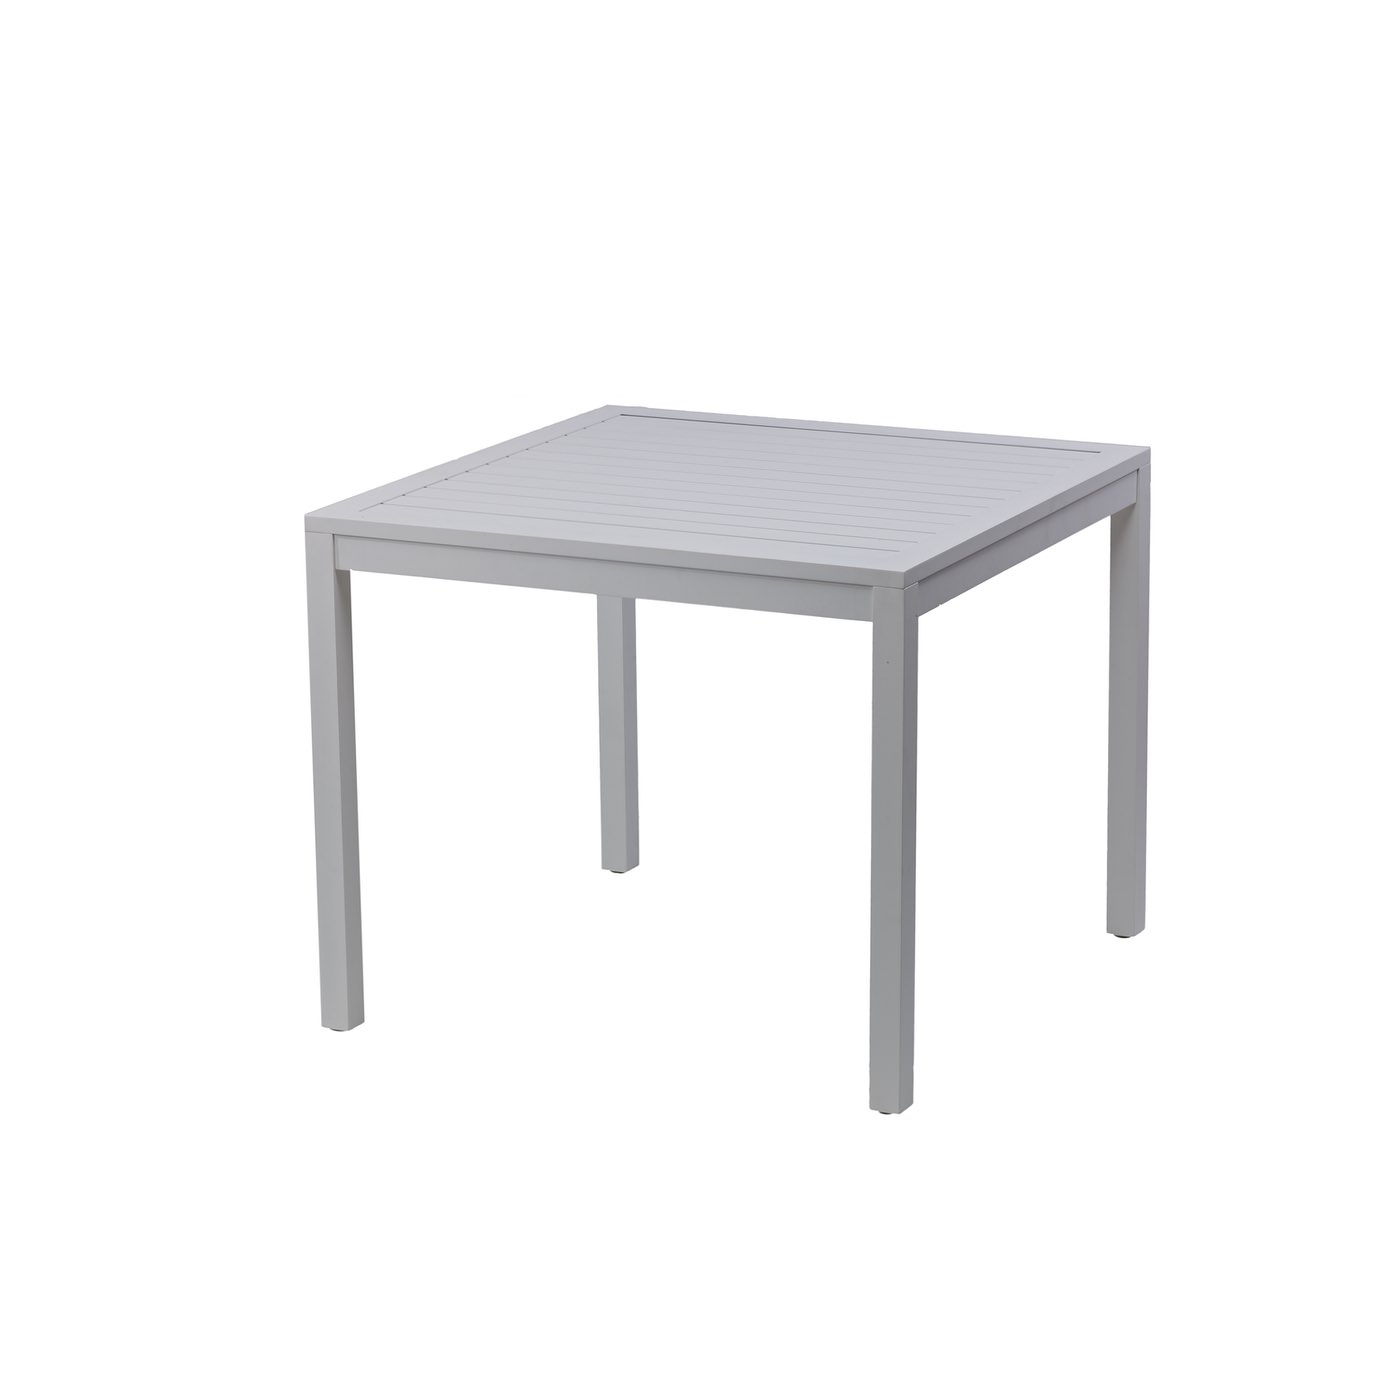 Koro Square Dining Table (28x28)